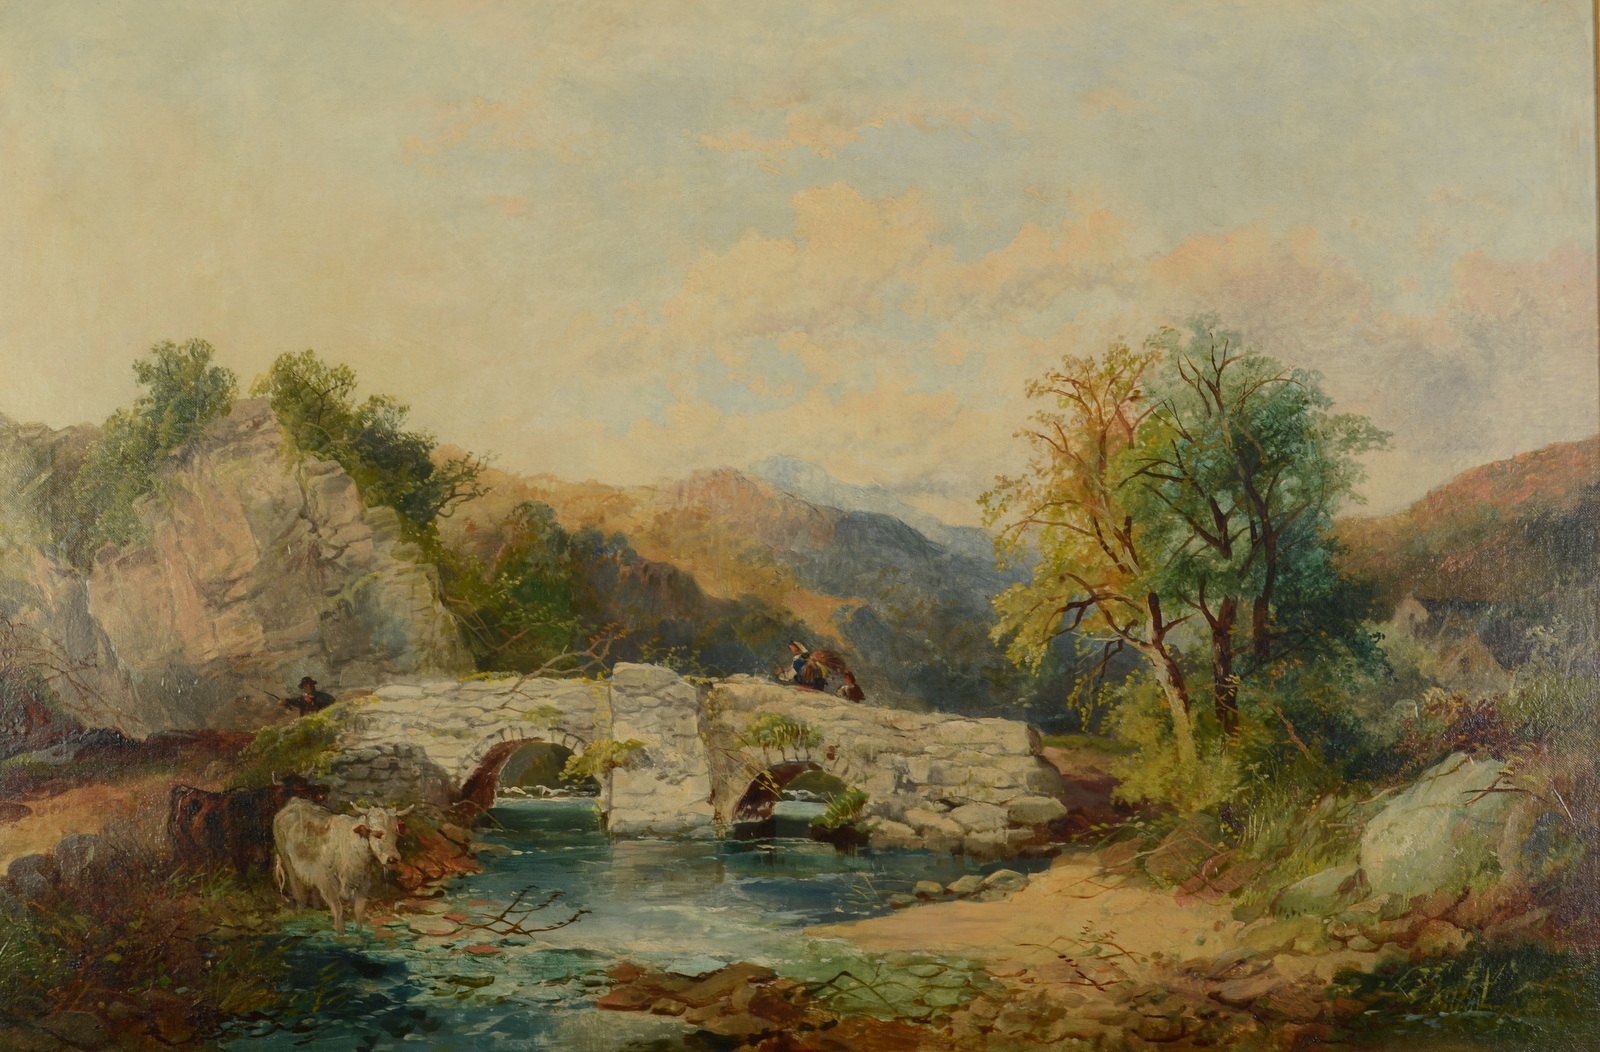 Lot 3 - JOSEPH HORLOR People crossing a bridge in a mountain landscape Oil on canvas Signed Indistinct